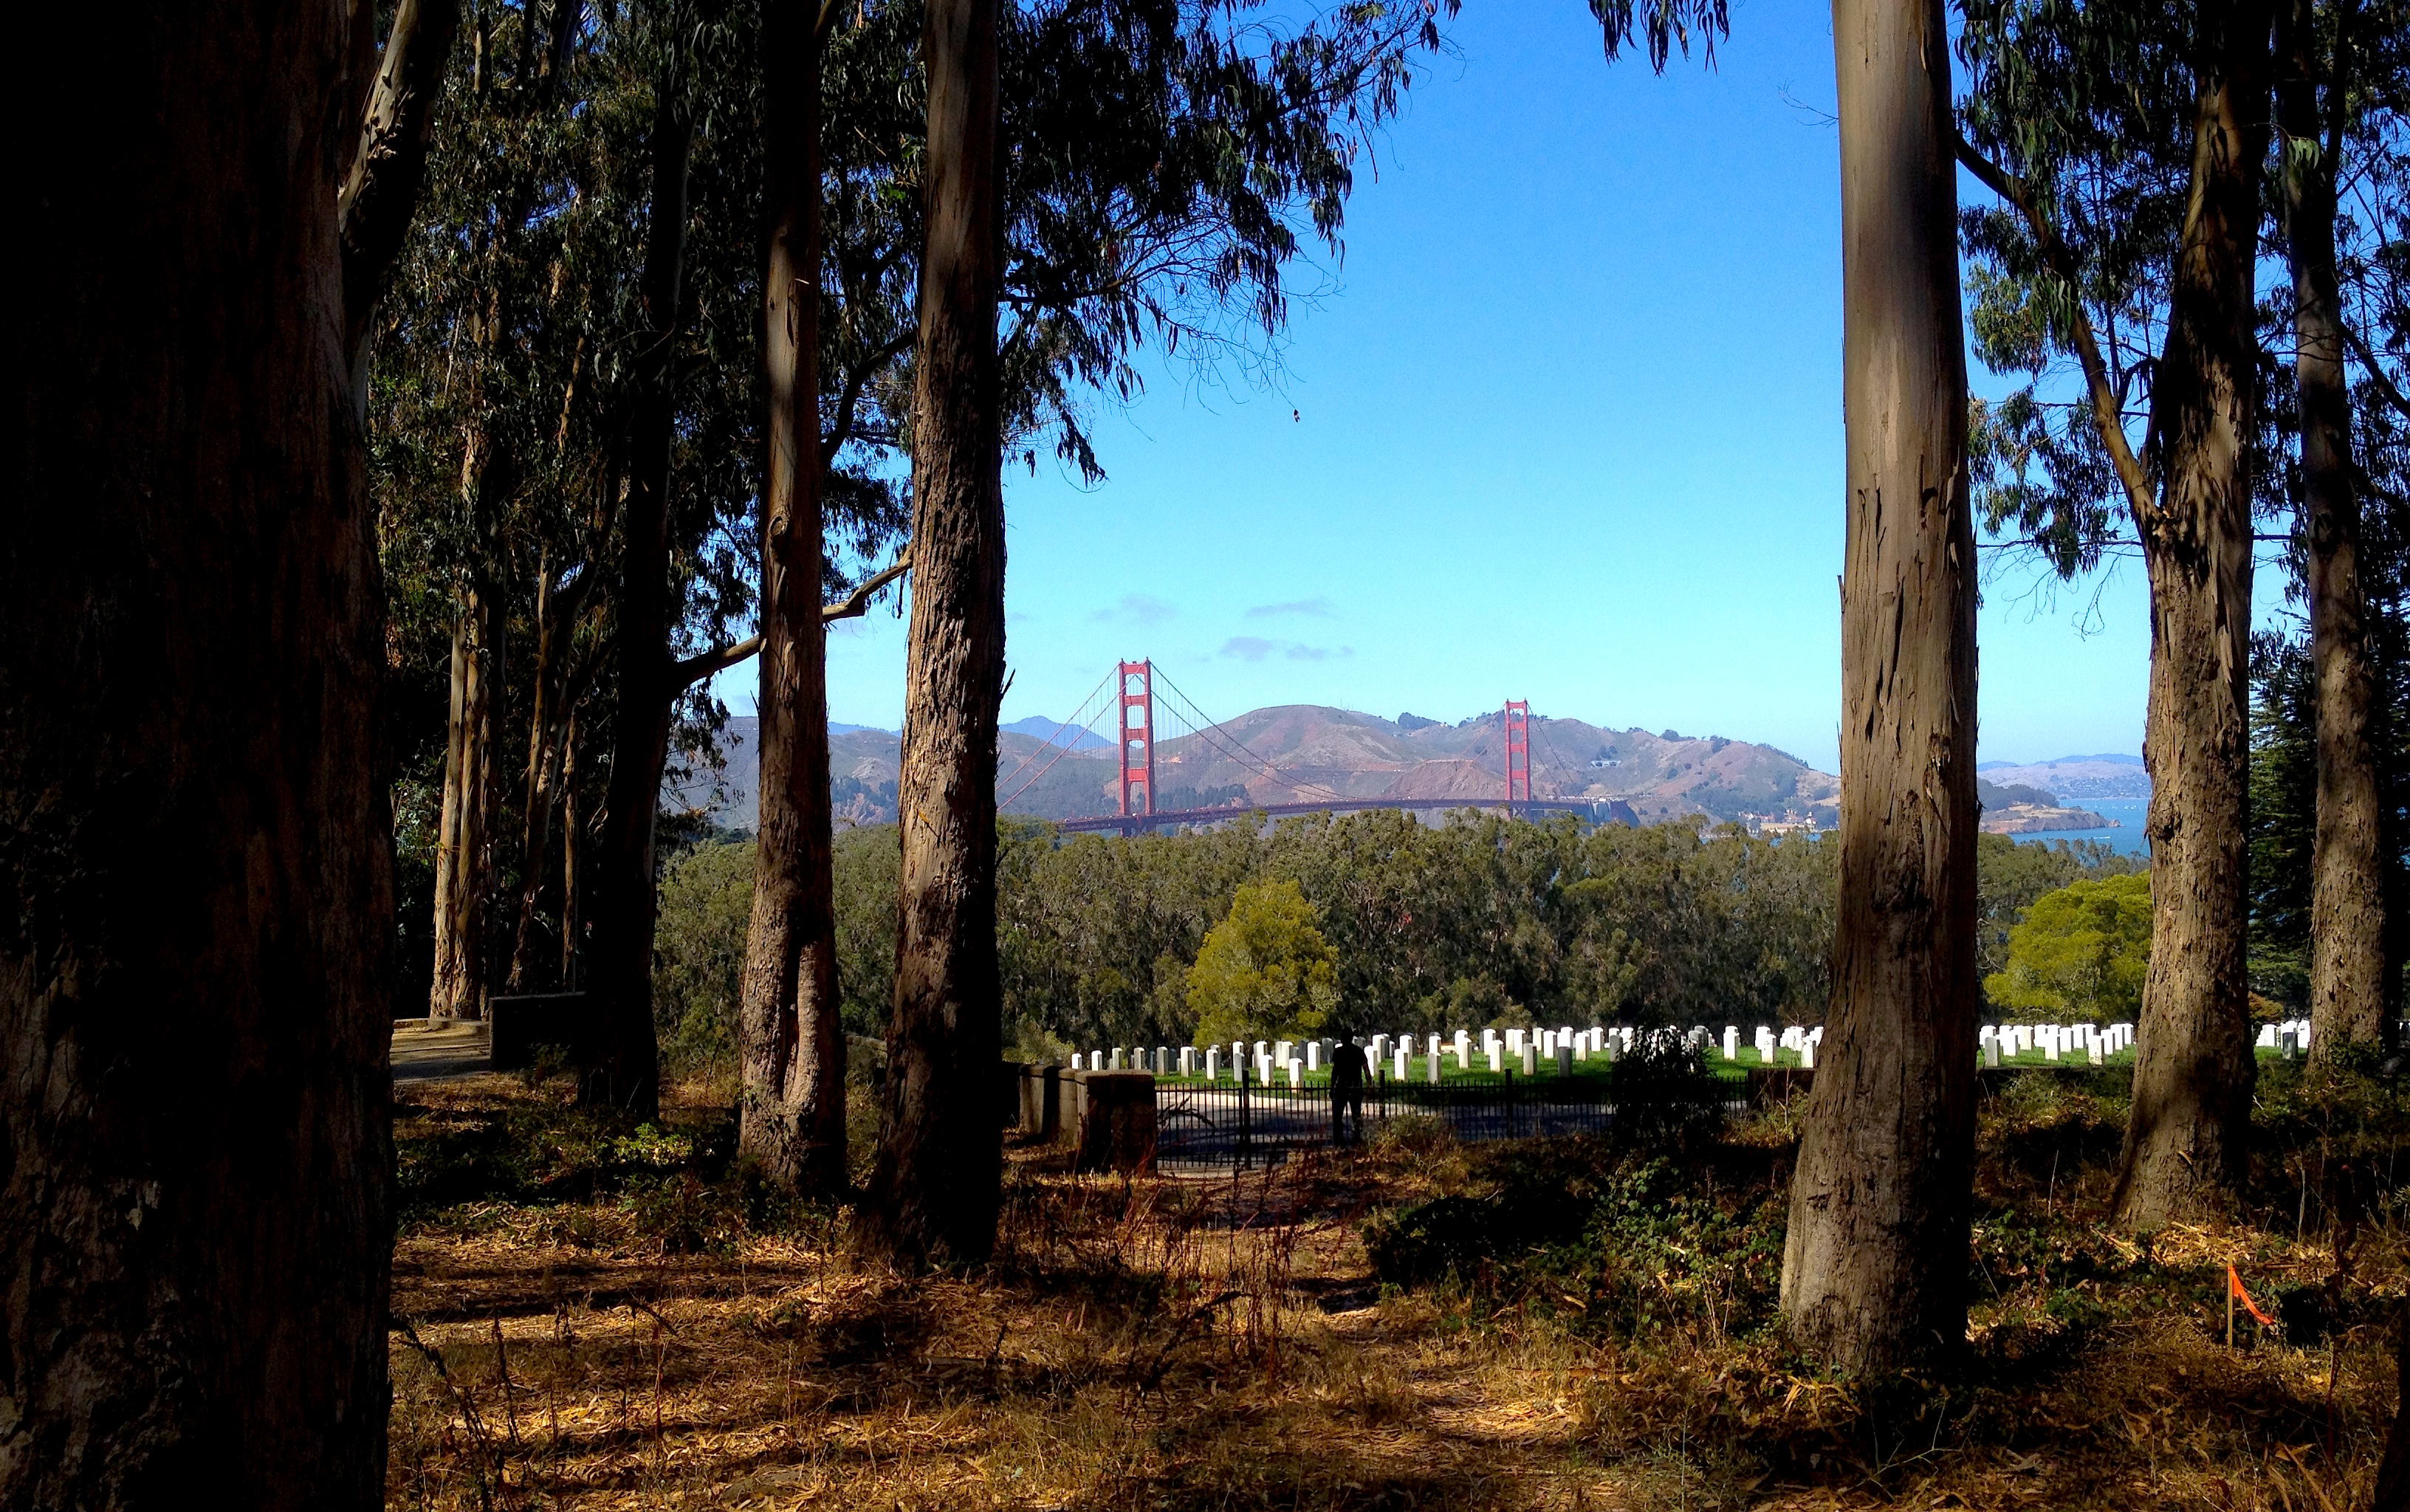 View to the GG from the Presidio